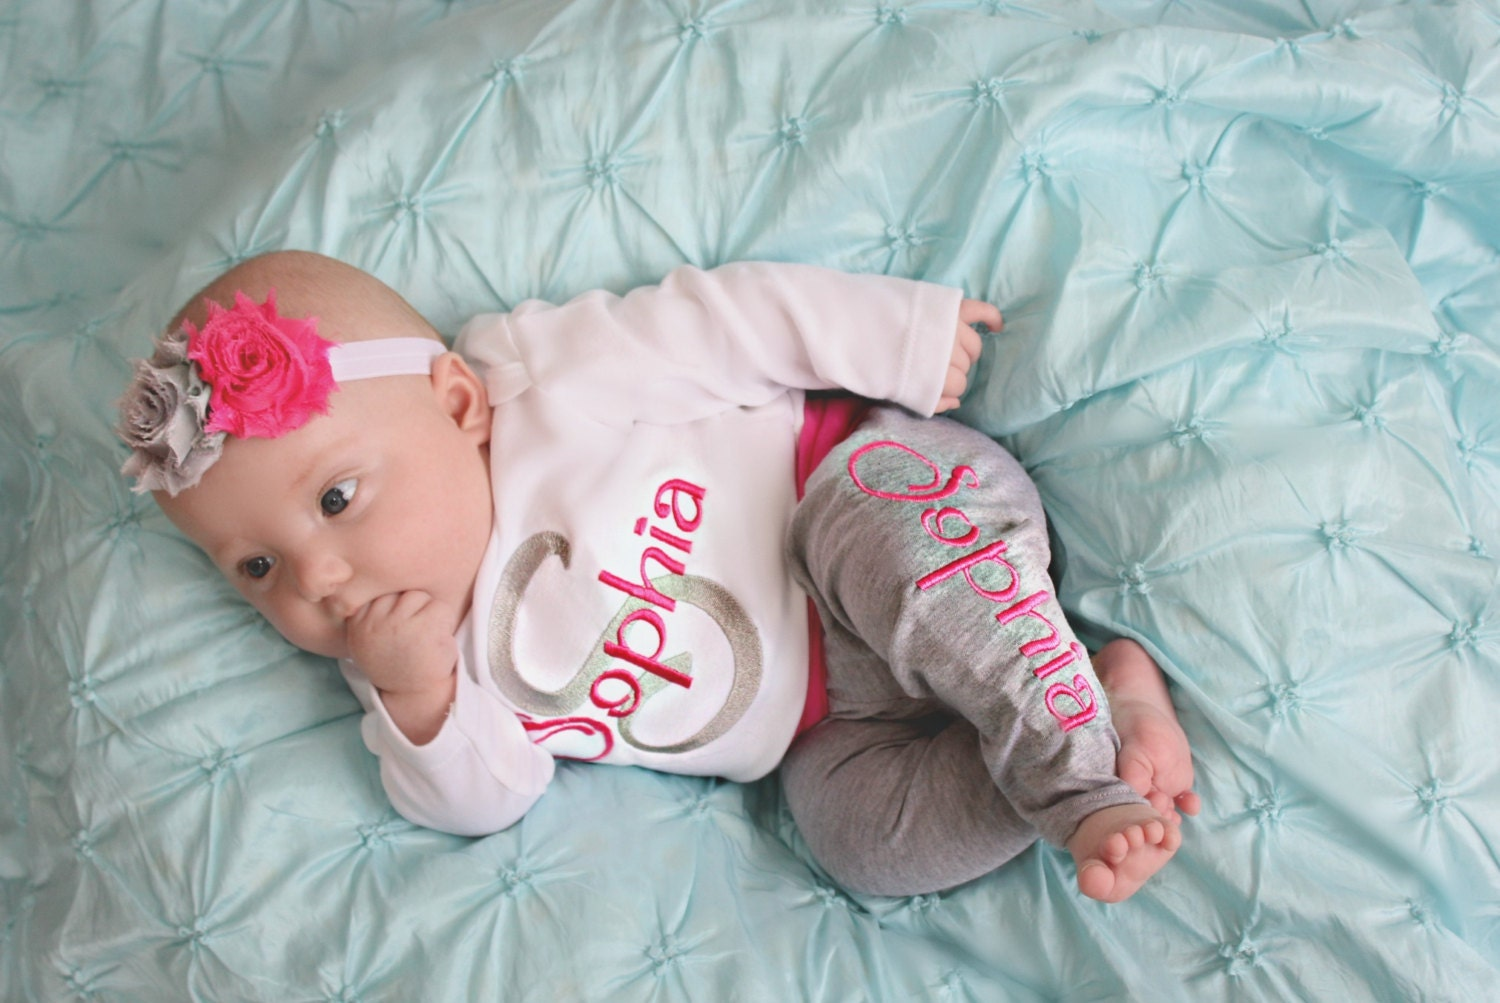 Etsy Australia Baby Gifts : Customized baby gifts australia gift ftempo